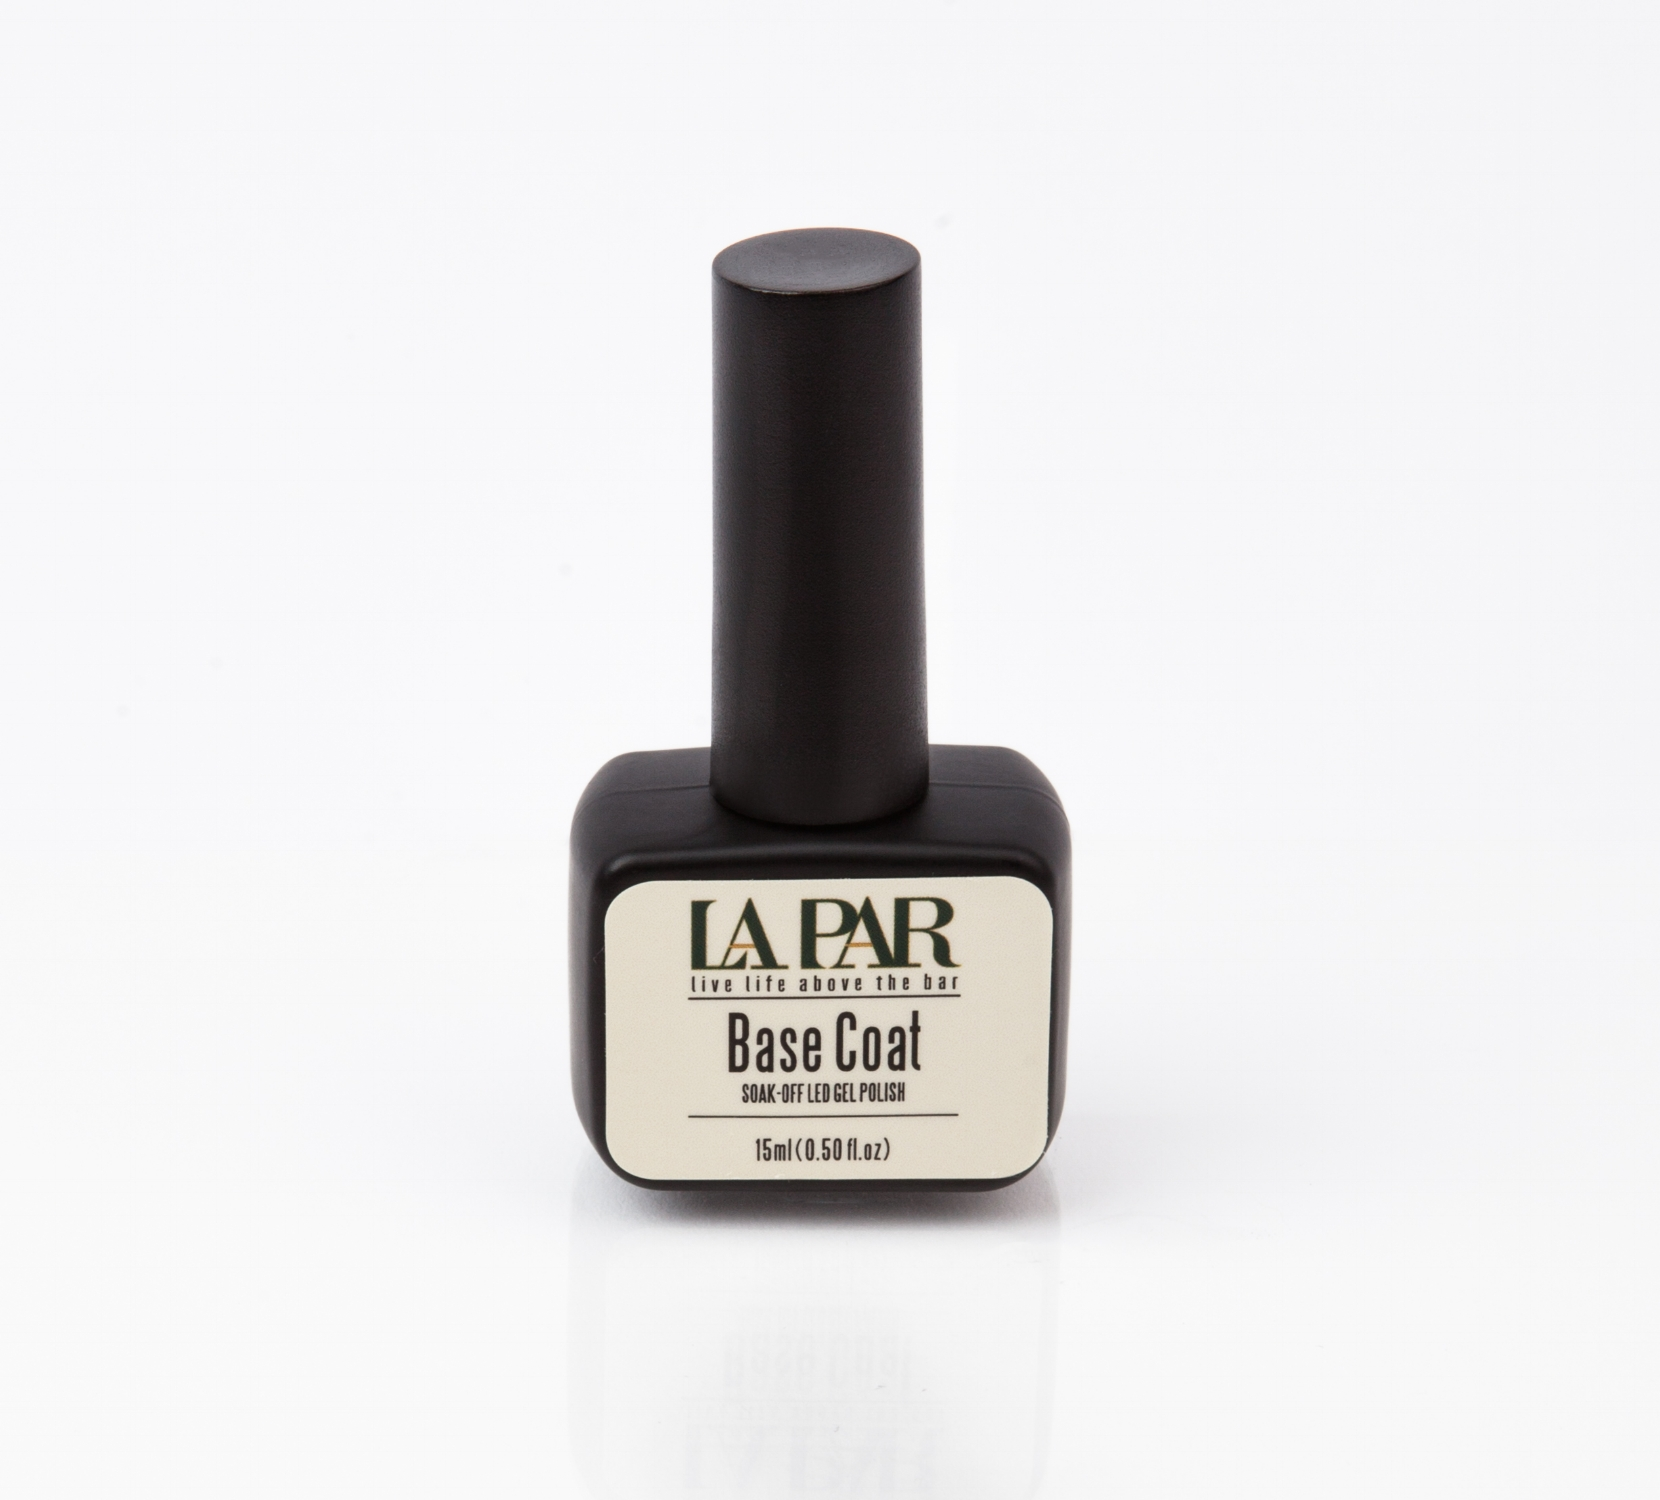 BASE-COAT - Prep your nails with La Par's Base Coat.